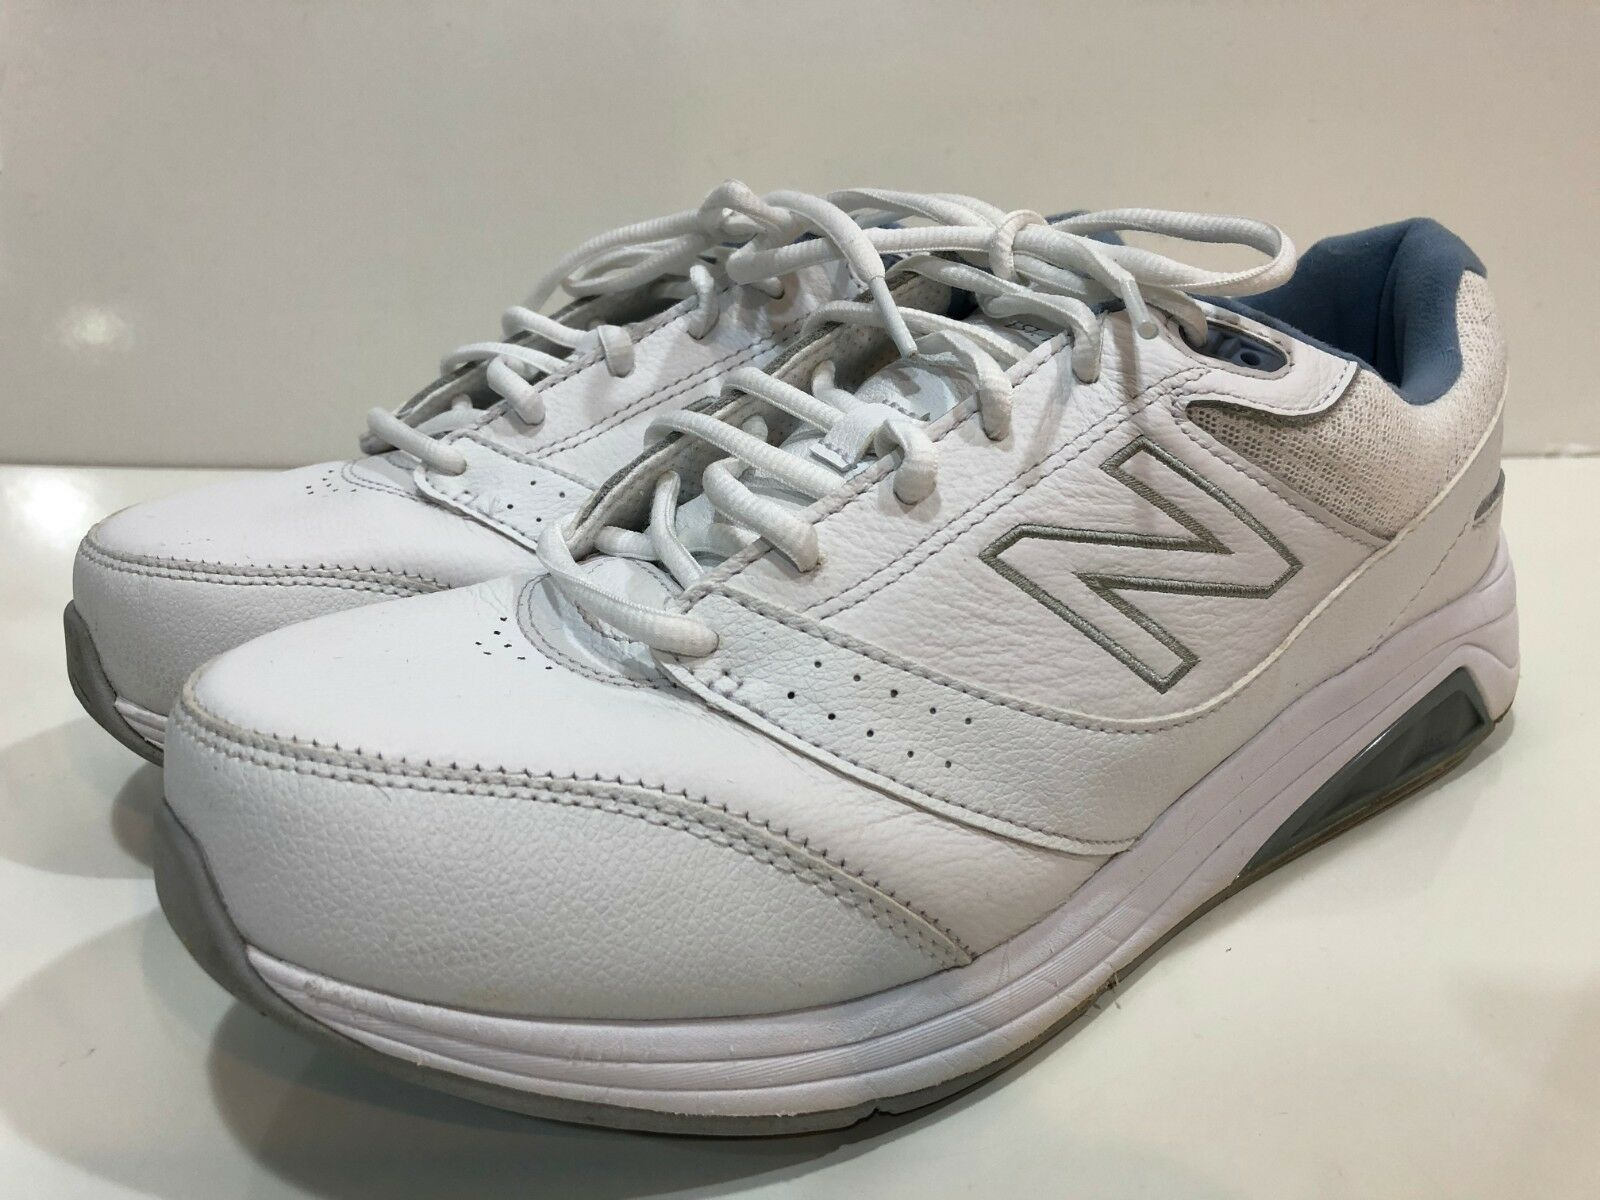 New New New Balance 928v3 Women's Athletic Walking Rollbar Shoes Size 12 2E f30060